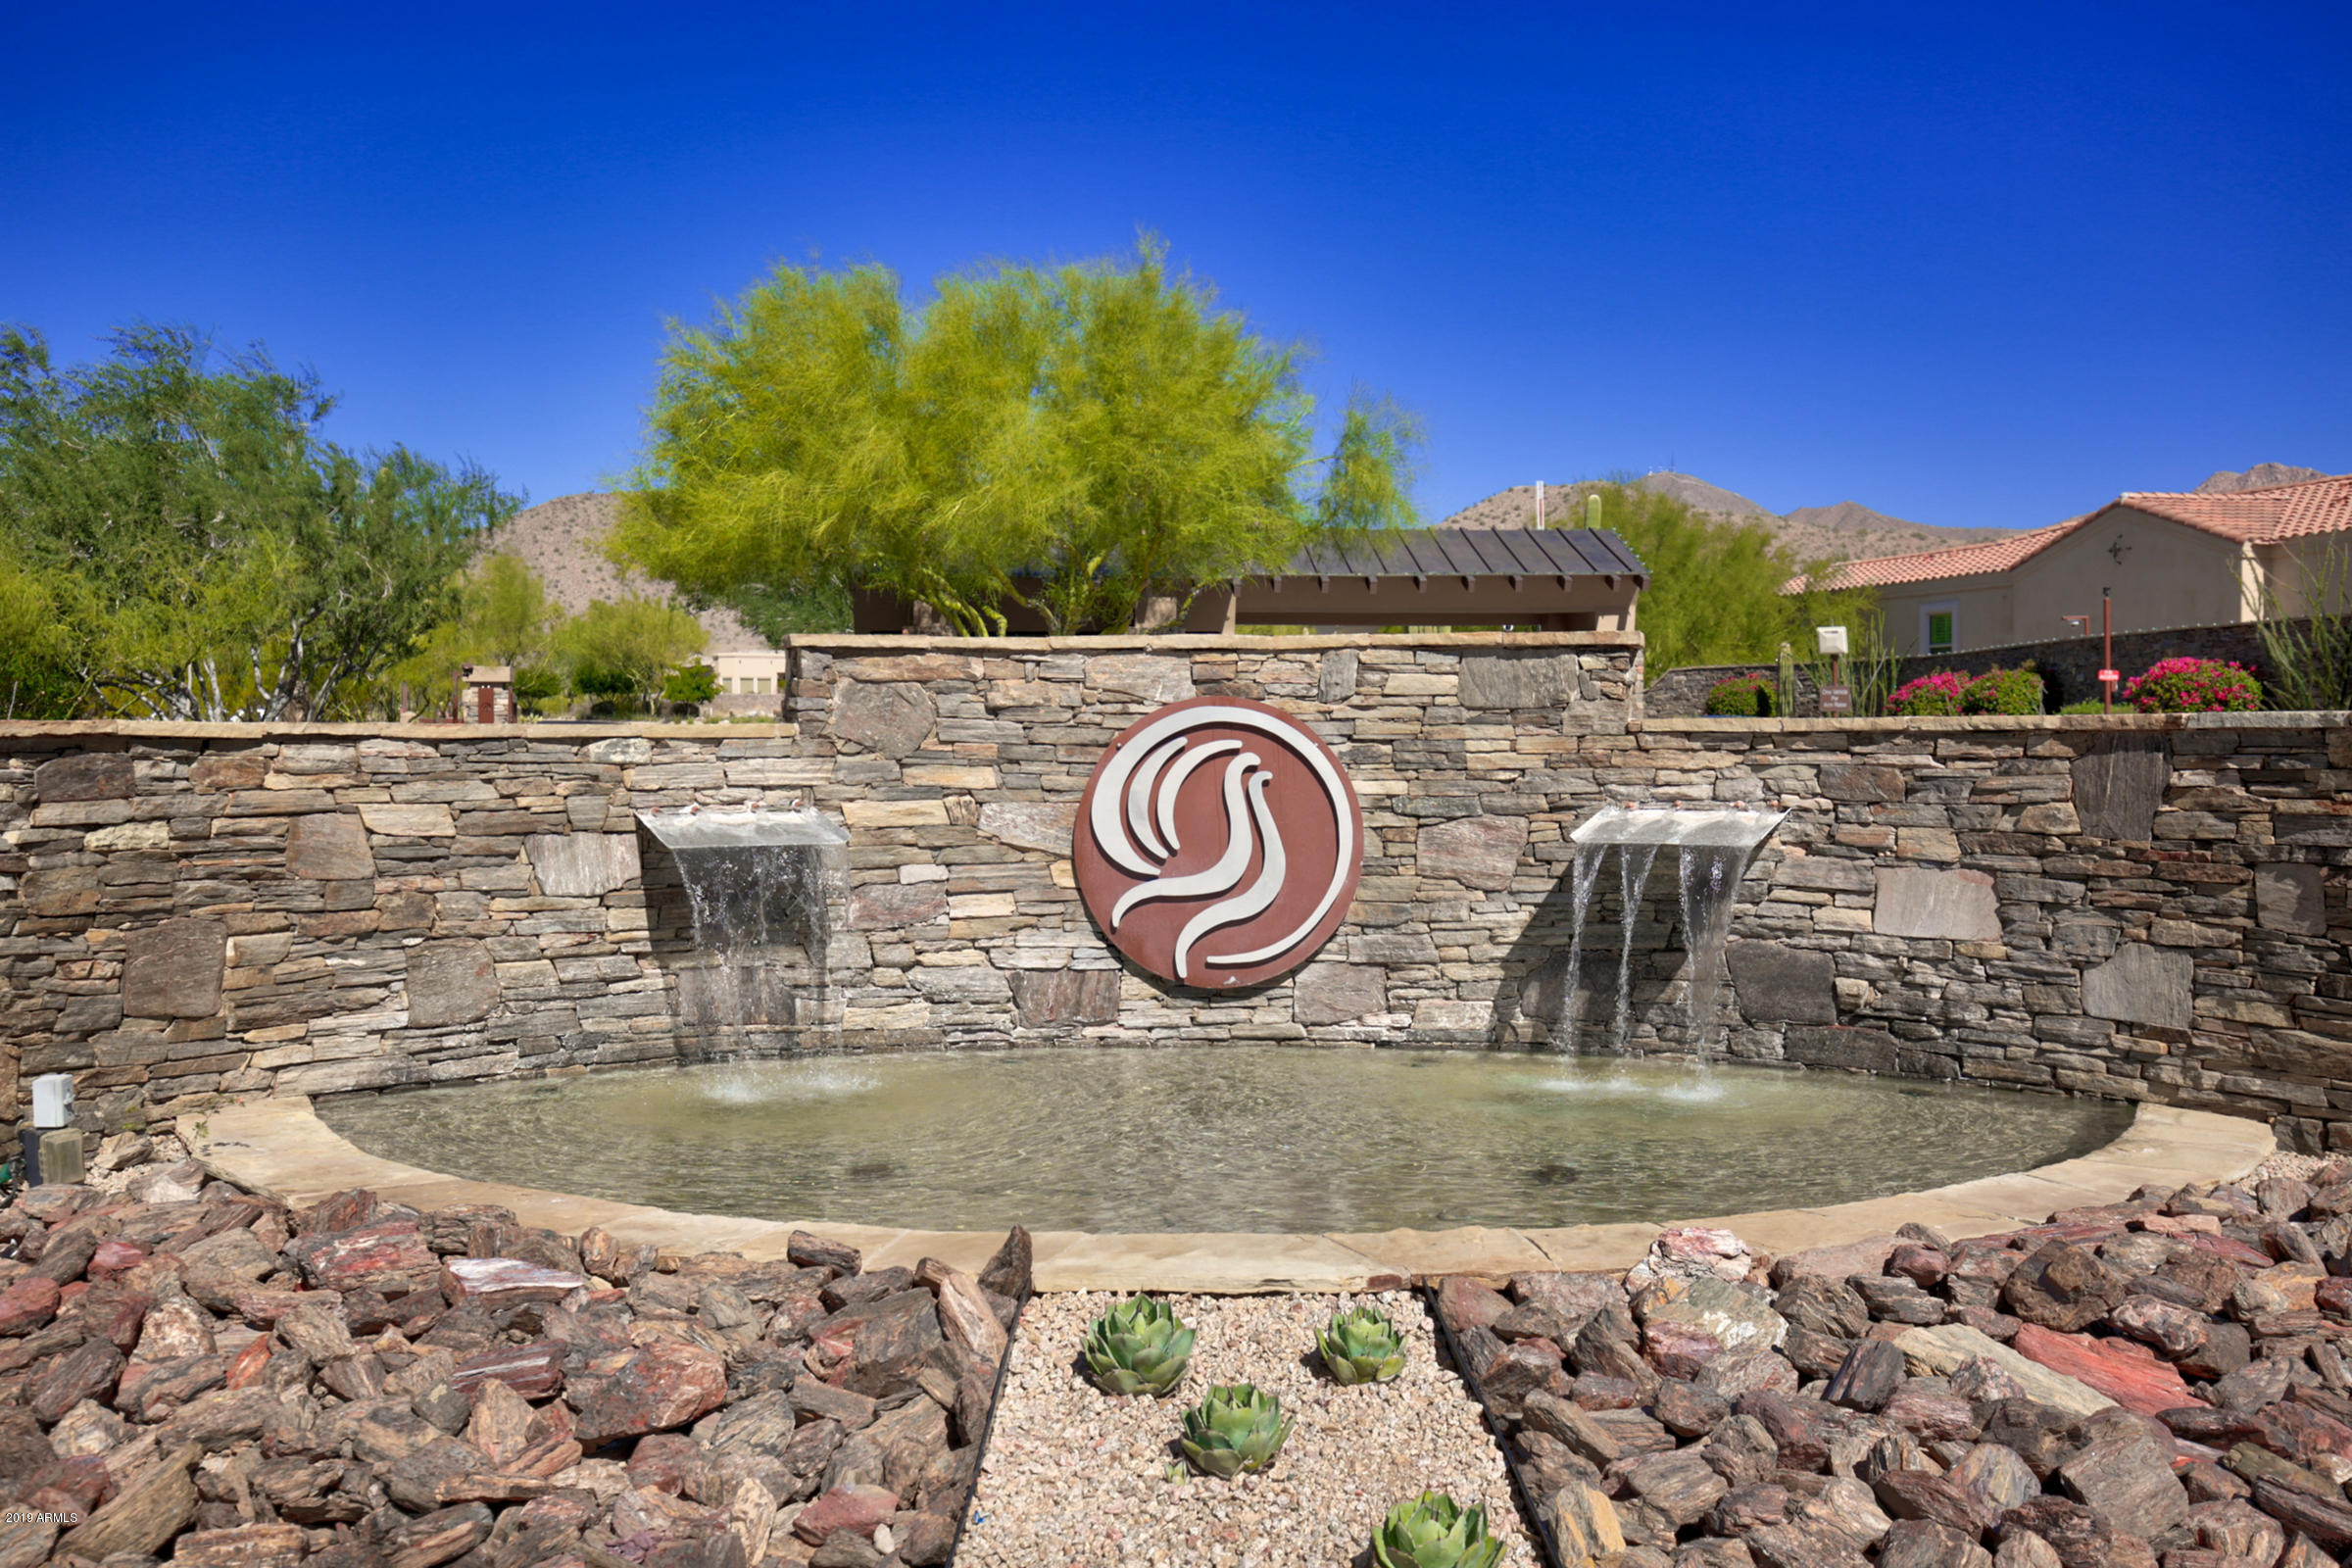 MLS 5972660 11791 N 114TH Way, Scottsdale, AZ 85259 Scottsdale AZ Private Pool